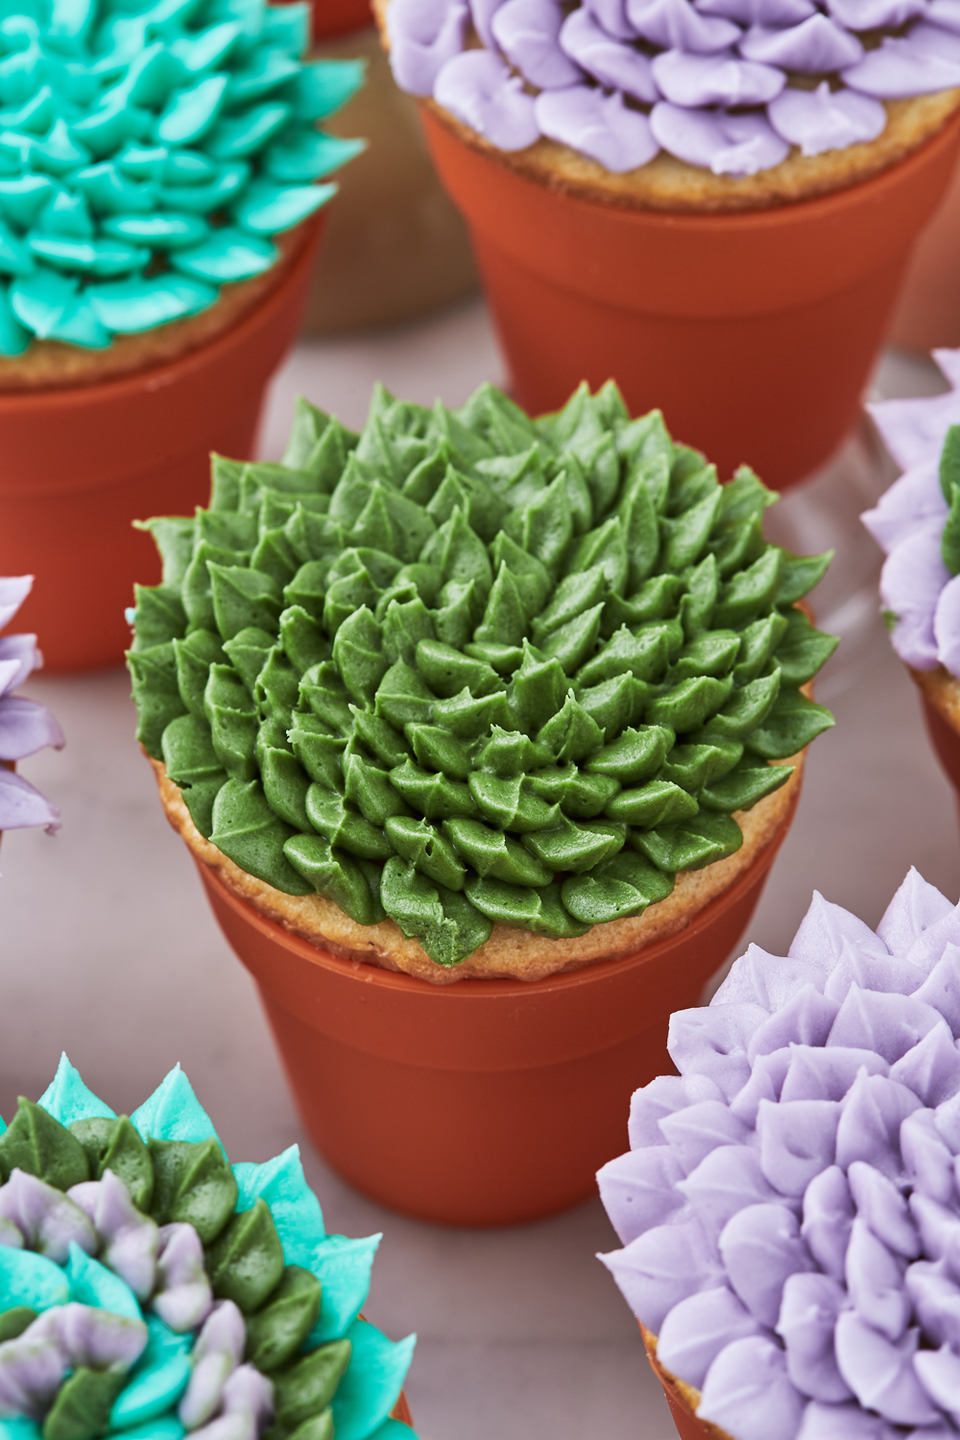 """<p>So pretty you'll think you're in a garden. </p><p>Get the recipe from <a href=""""https://www.delish.com/cooking/recipe-ideas/a19802923/succulent-cupcakes-recipe/"""" rel=""""nofollow noopener"""" target=""""_blank"""" data-ylk=""""slk:Delish"""" class=""""link rapid-noclick-resp"""">Delish</a>. </p>"""